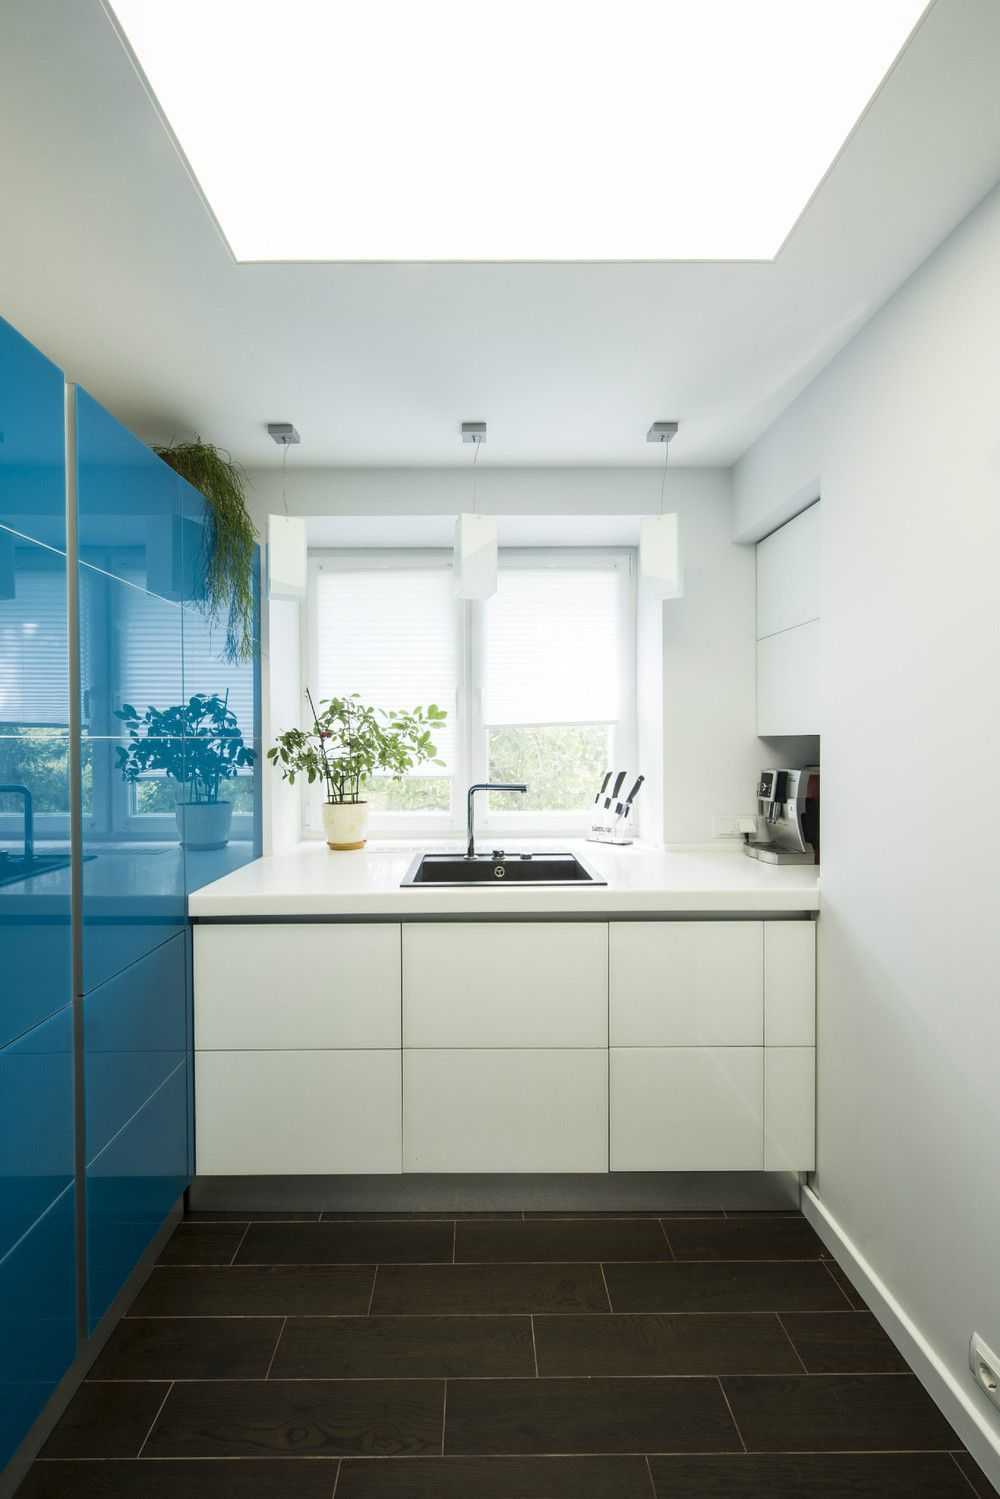 Apartments Andrew Rudoi Small White Kitchen Blue Wall Kitchen Alluring 2 Wall Kitchen Designs Inspiration Design